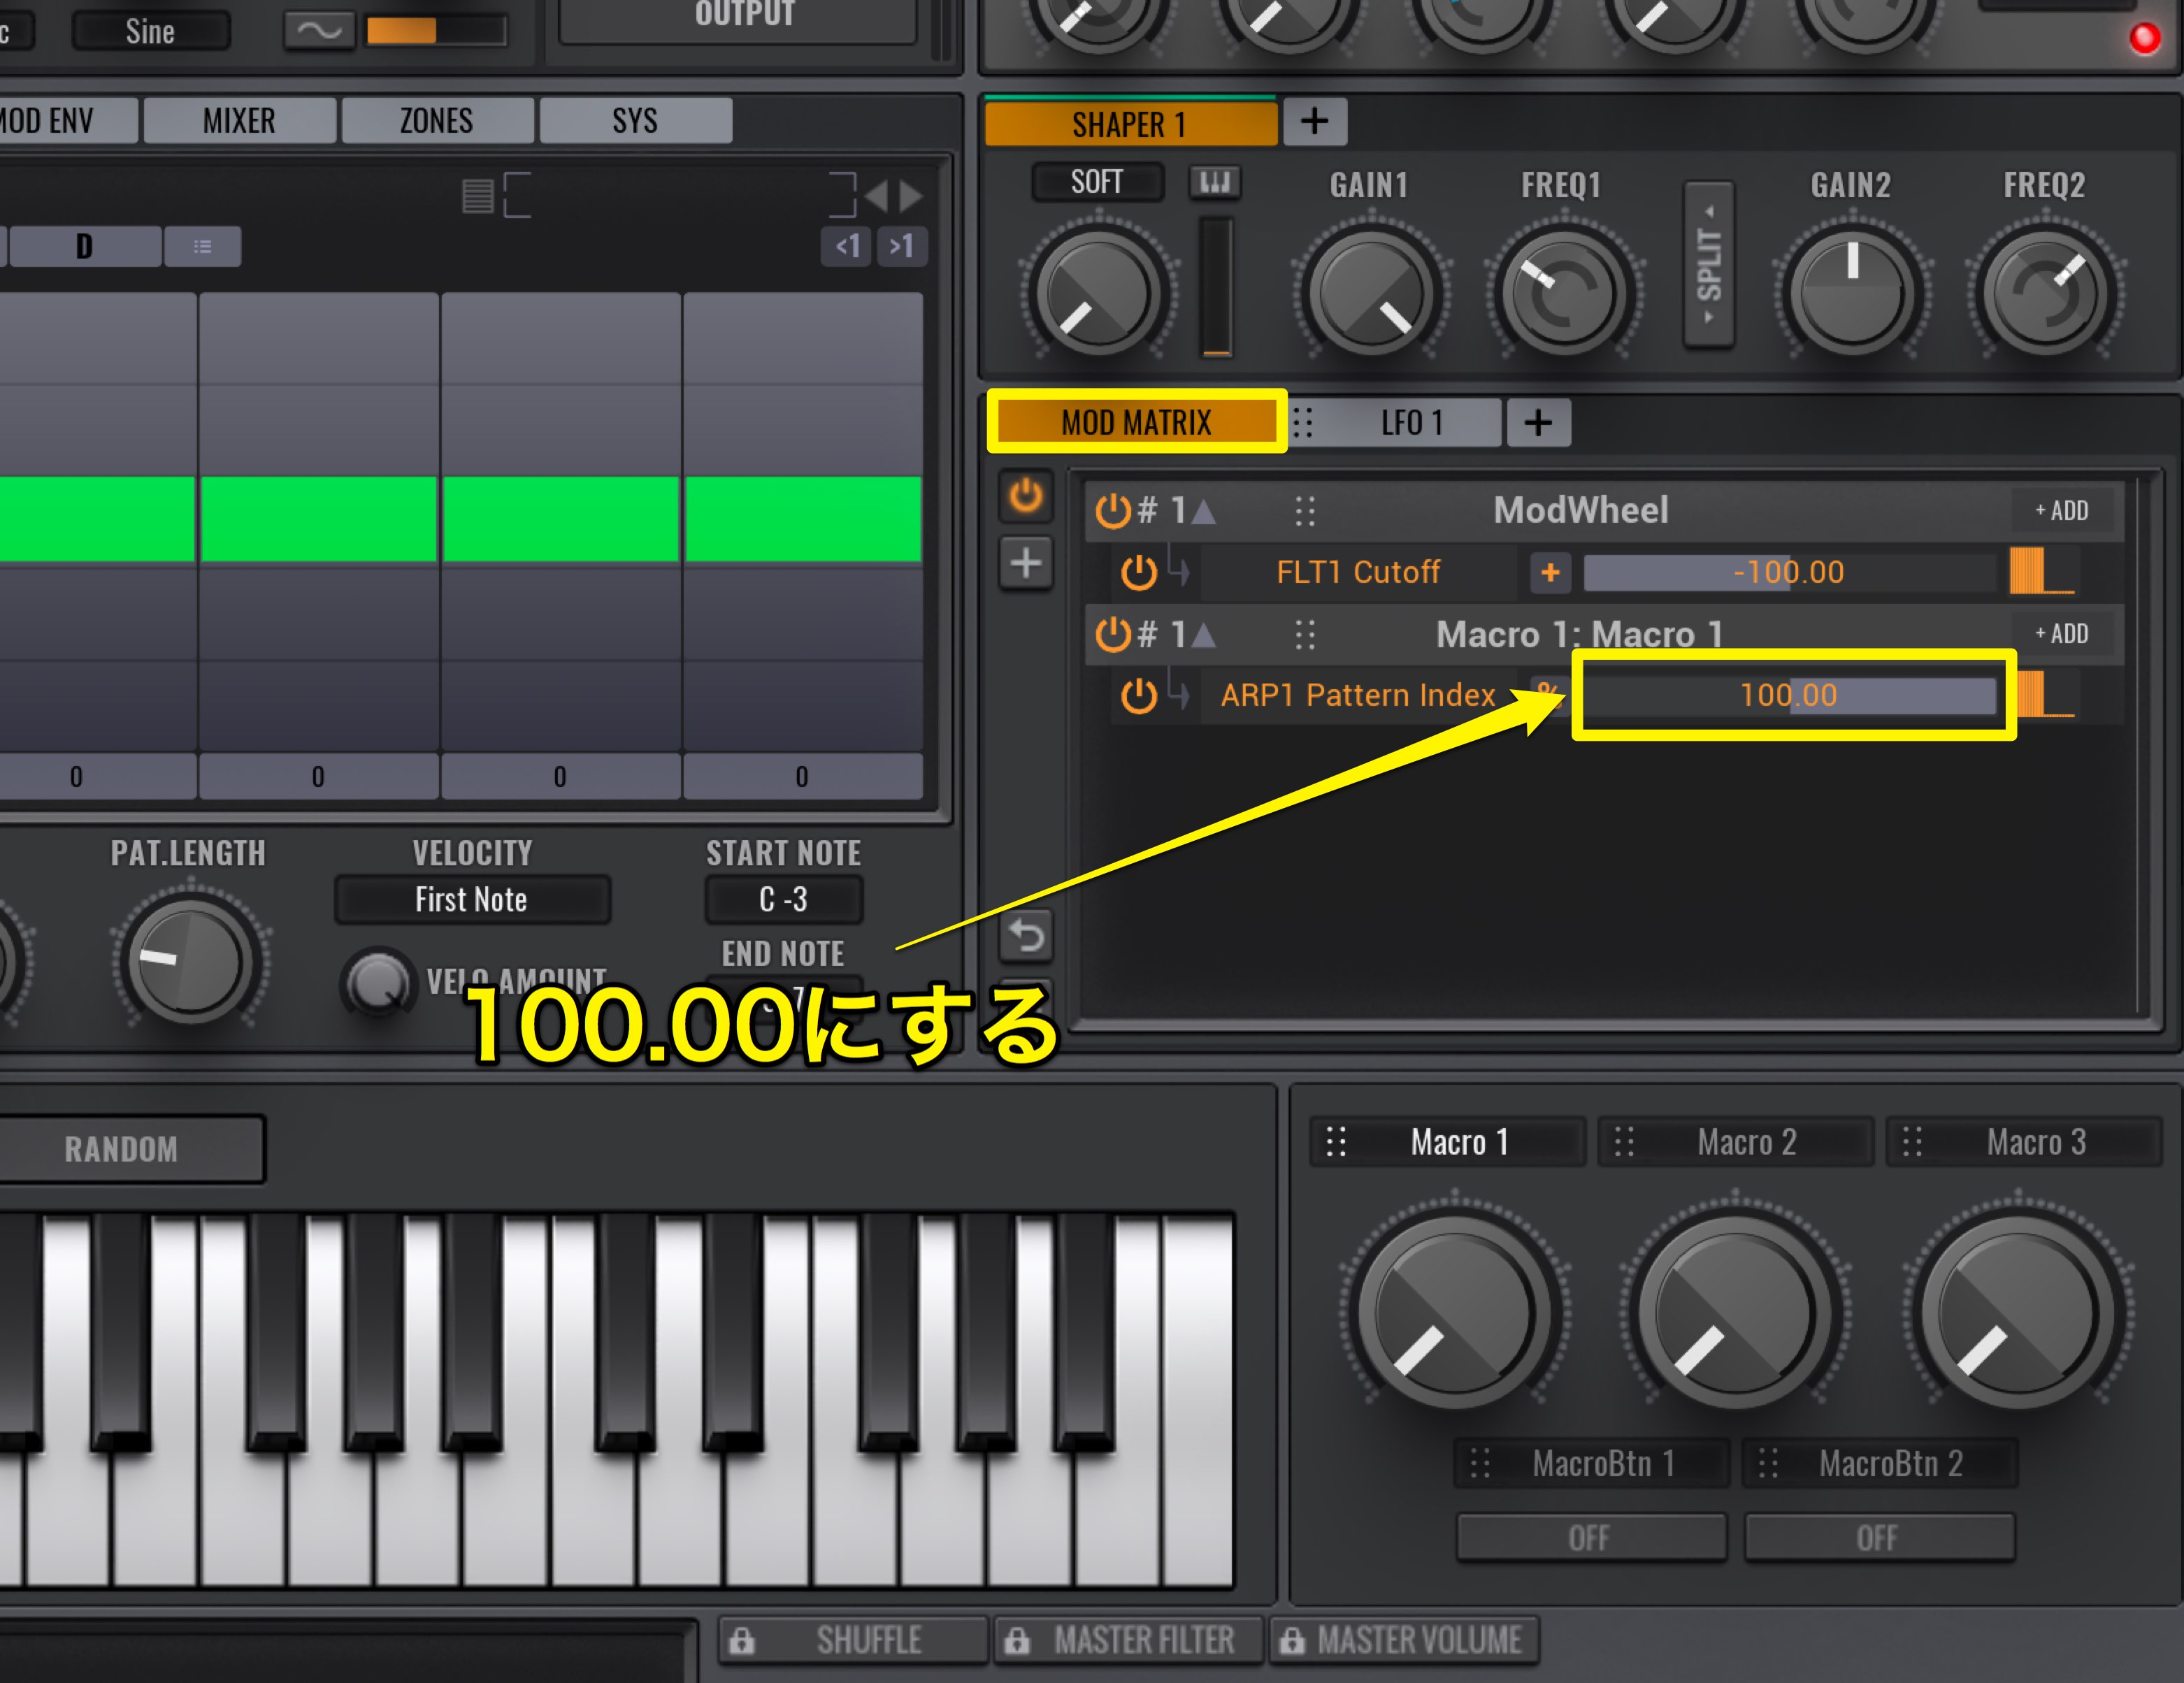 Vengeance Sound Avenger - How to use - Arpeggiator and Macro